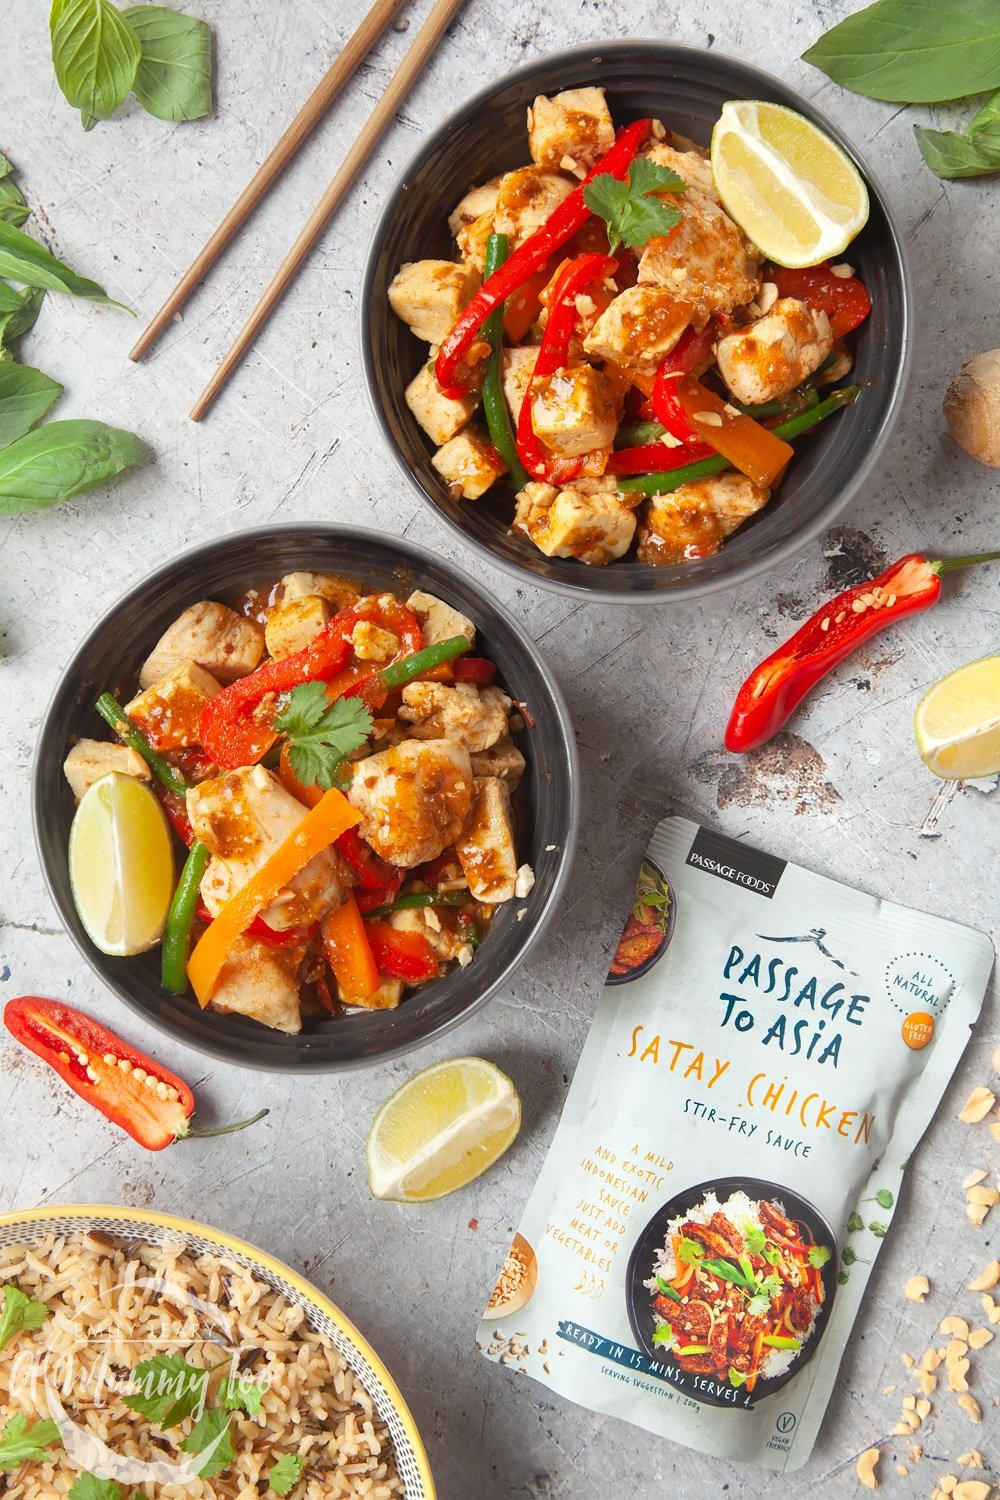 Chicken and tofu satay stir-fry made with Passage to Asia sauce